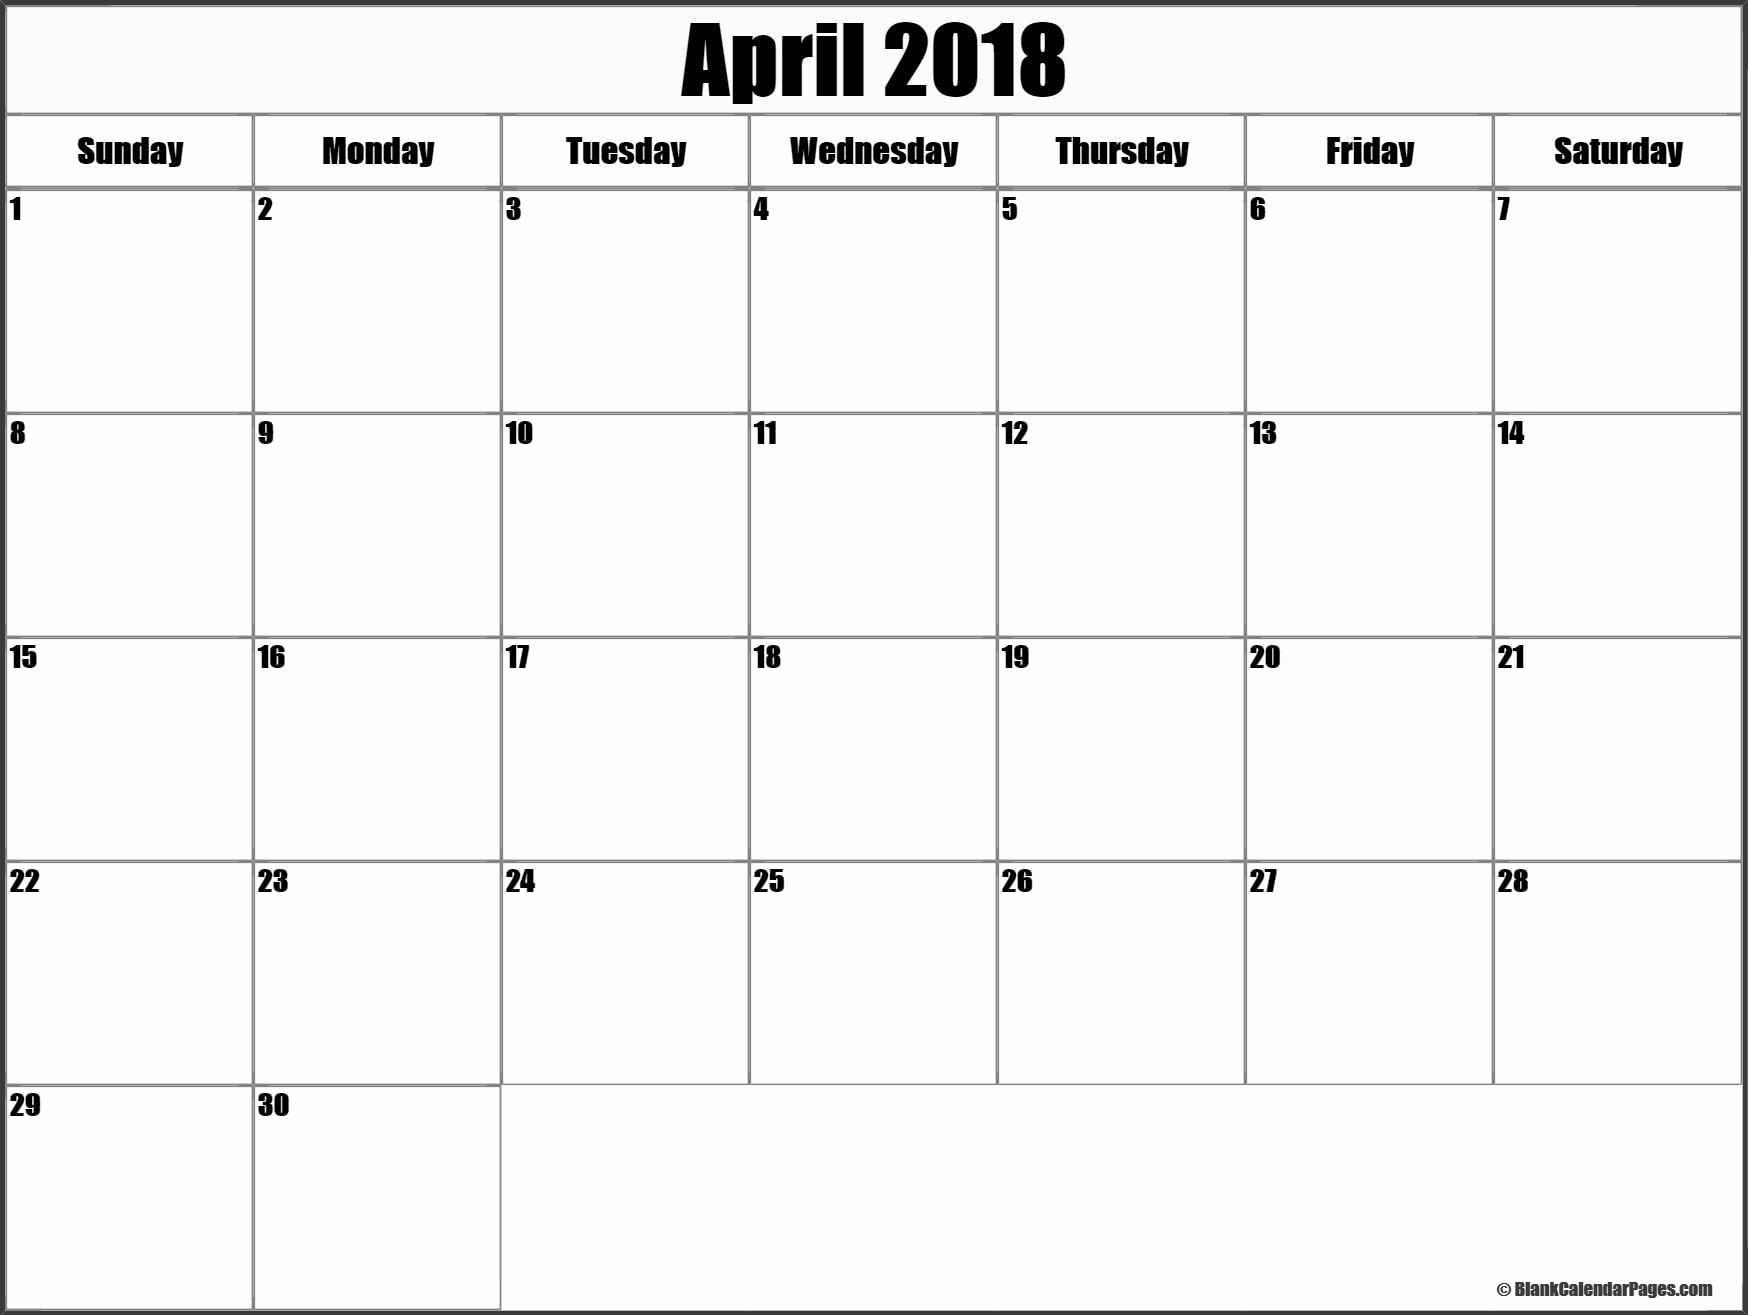 Blank April 2018 Calendar Template Luxury April 2018 Blank Calendar Templates